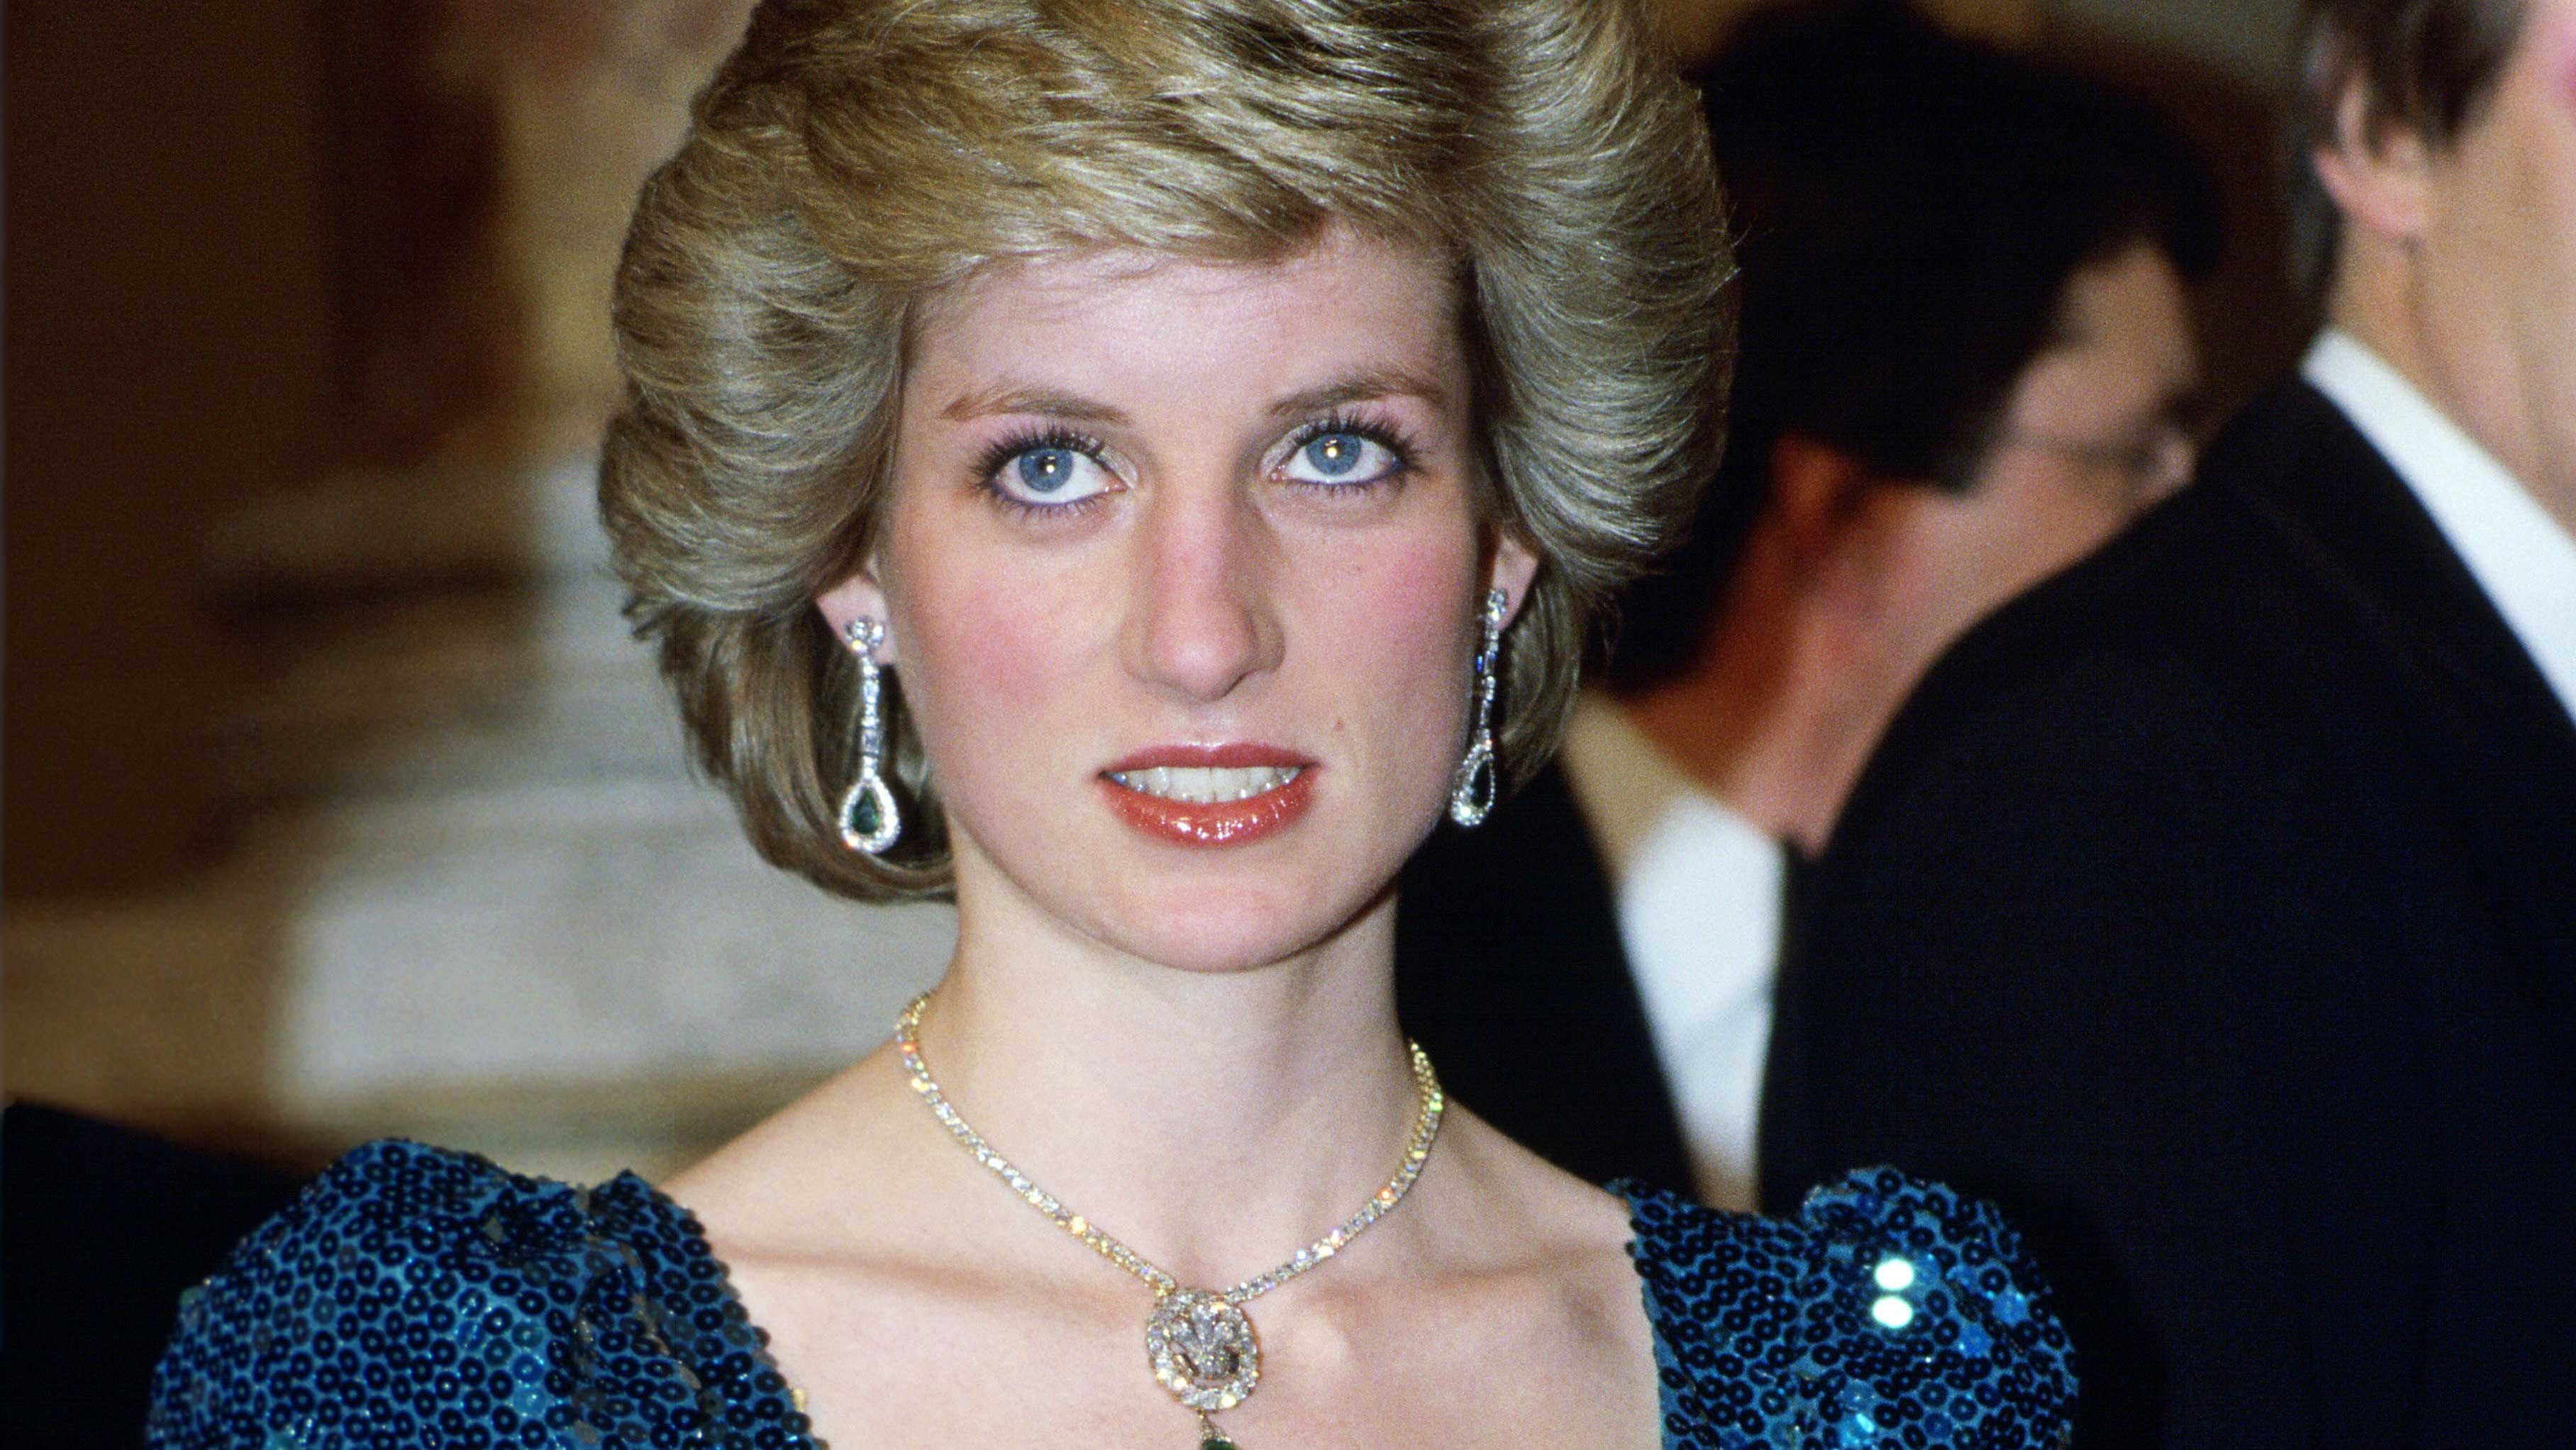 You can now buy one of Princess Diana's evening dresses